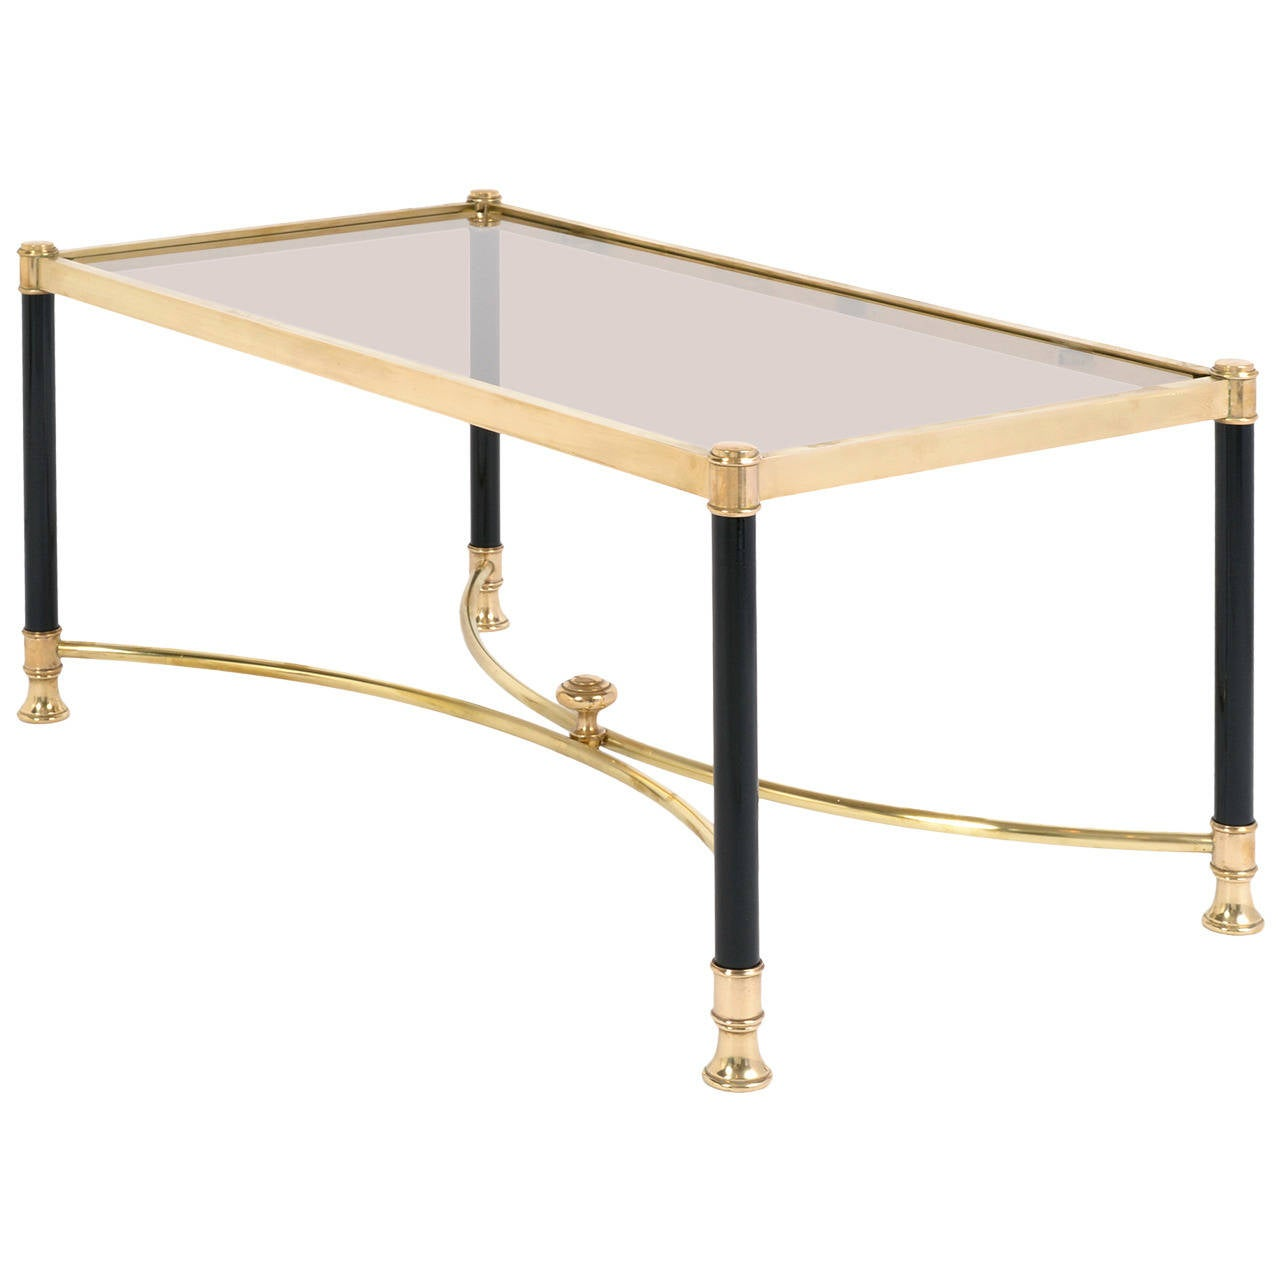 French Vintage Coffee Table By Maison Jansen At 1stdibs